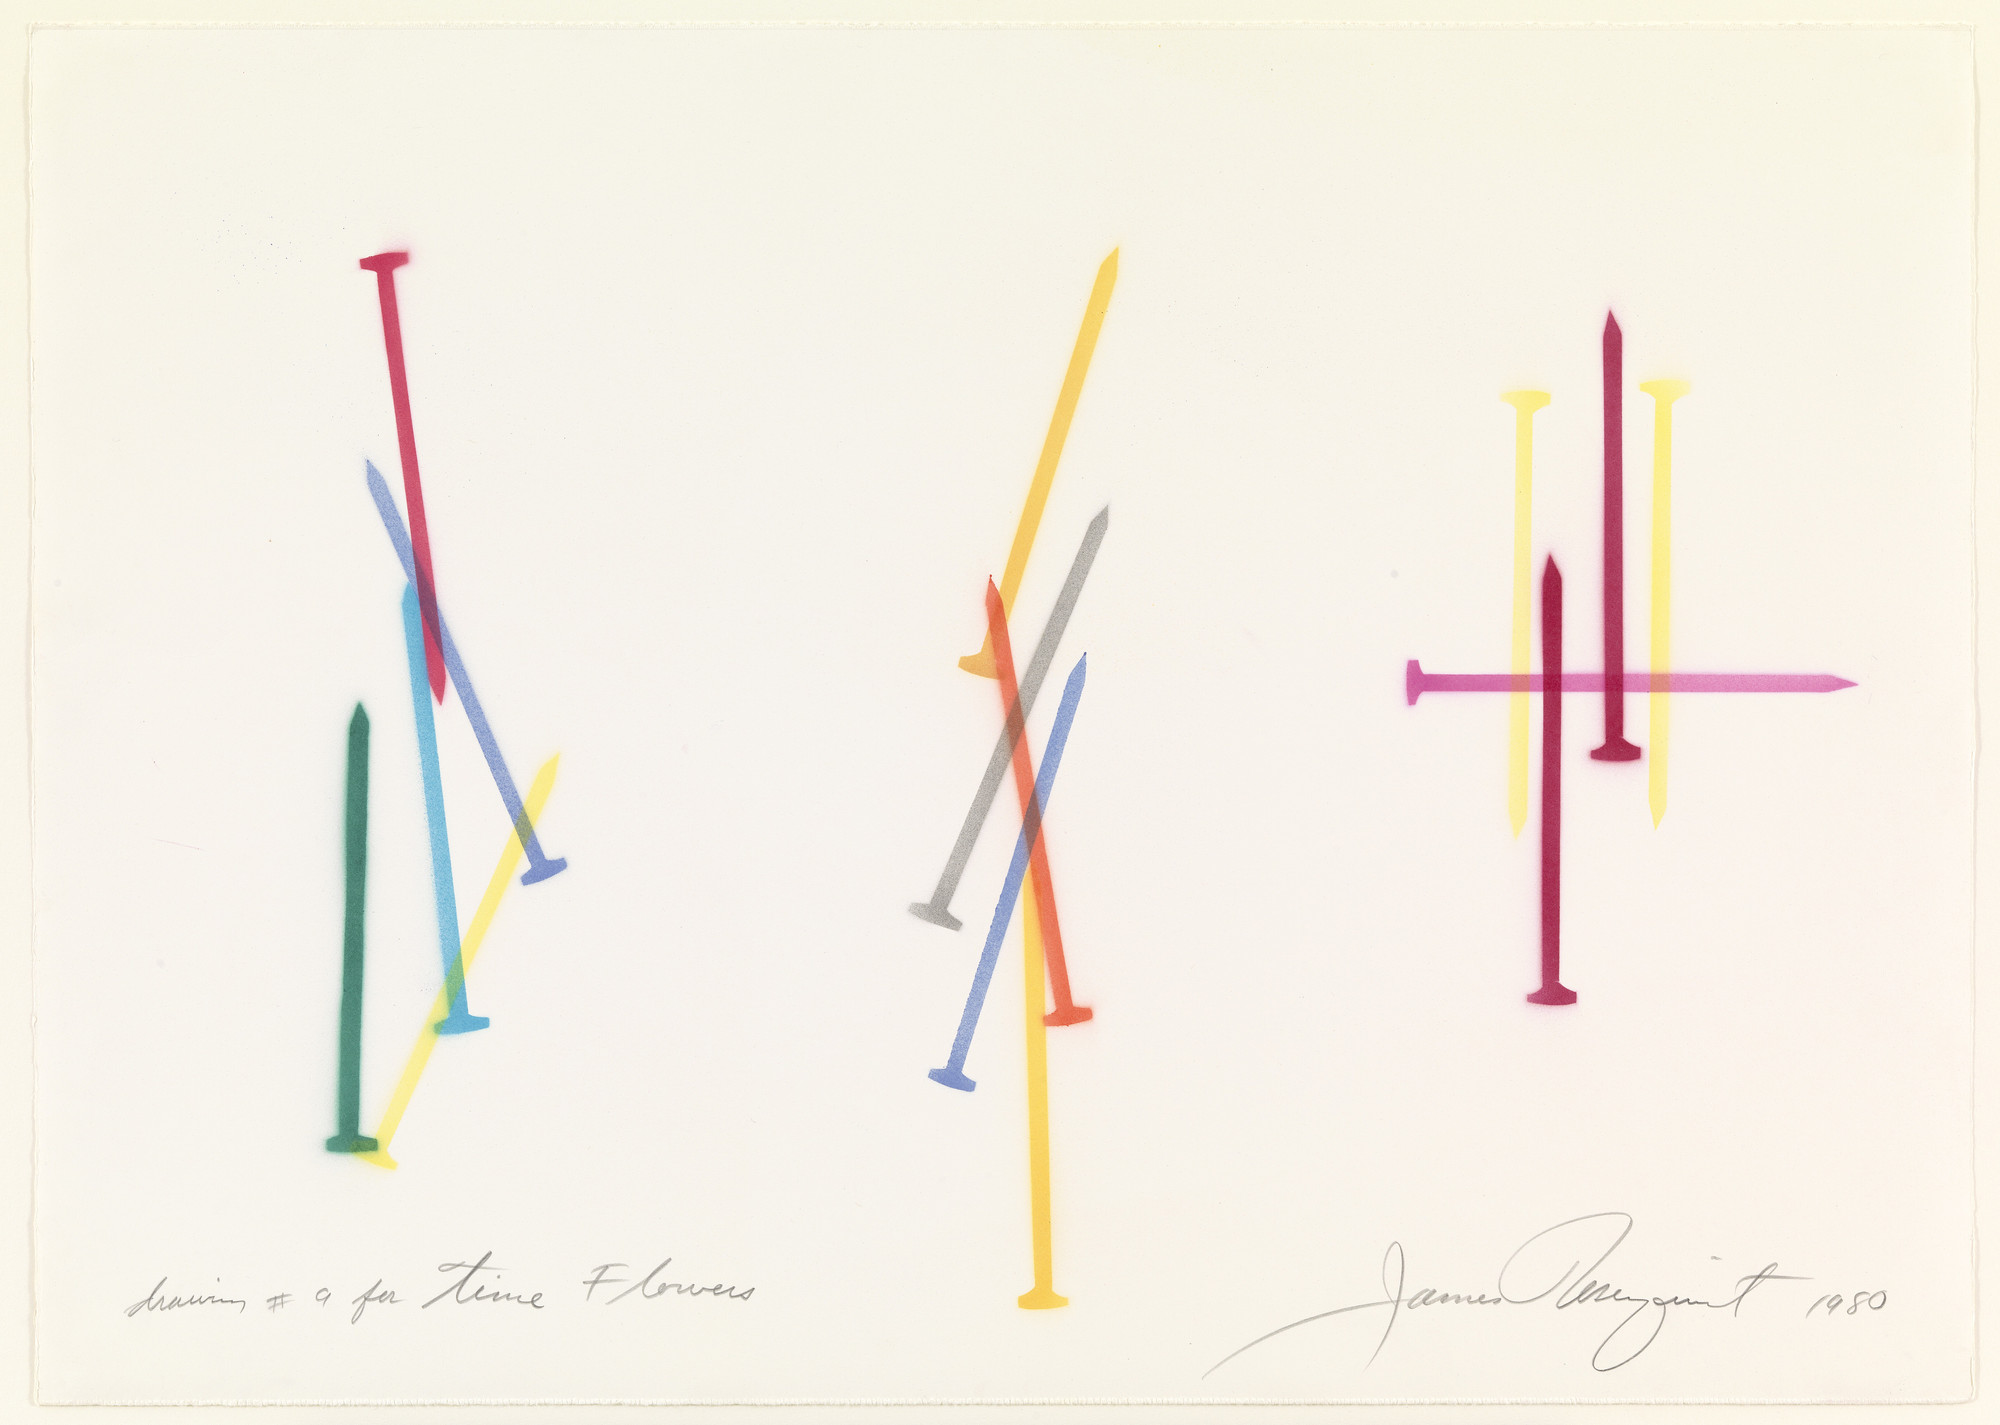 James Rosenquist. Drawing #9 for Time Flowers. 1980